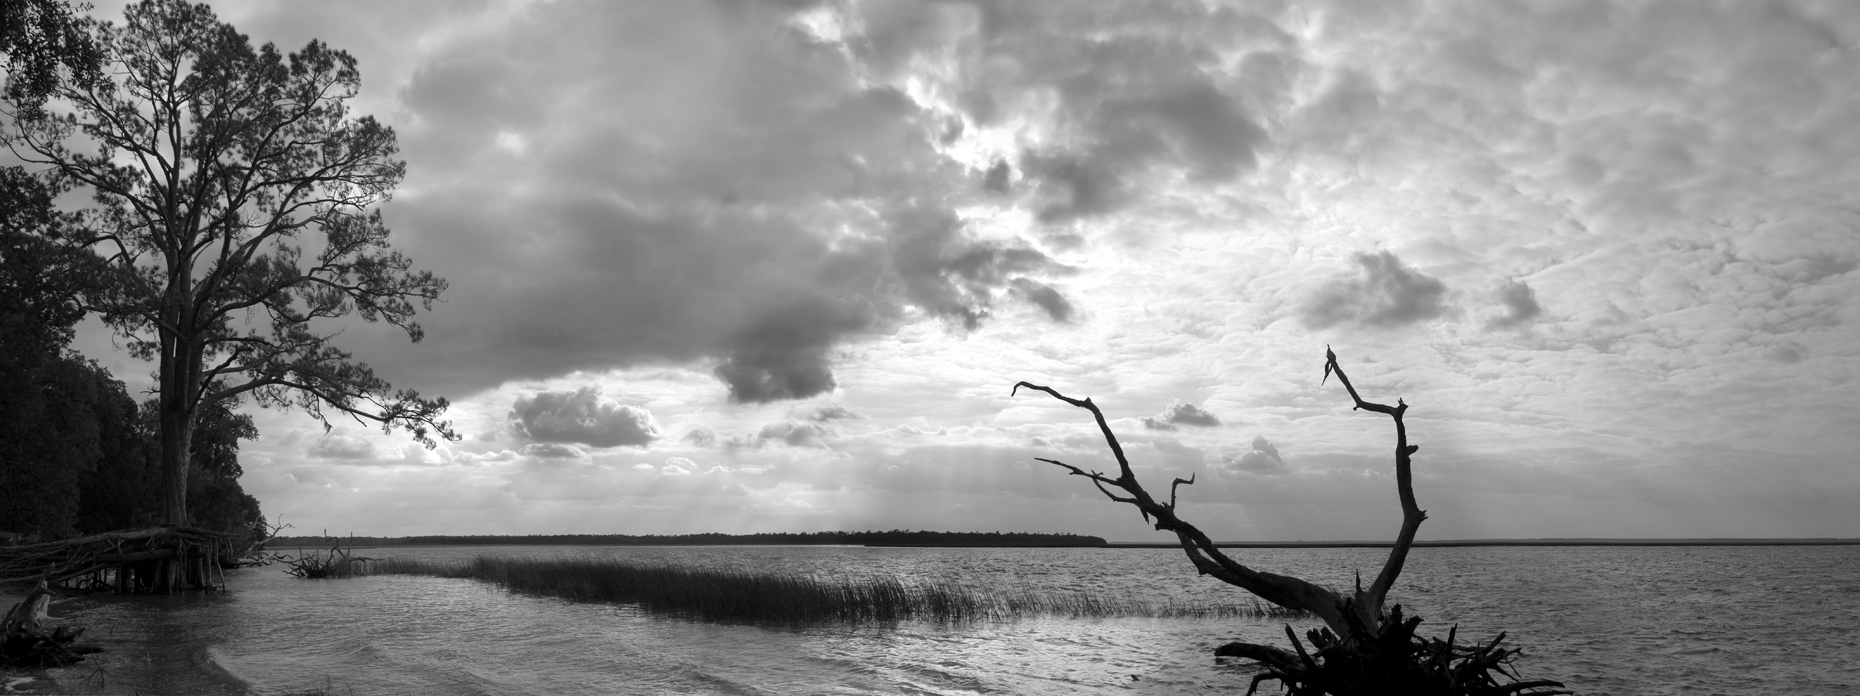 (BW)-Salt-Marsh-2.jpg